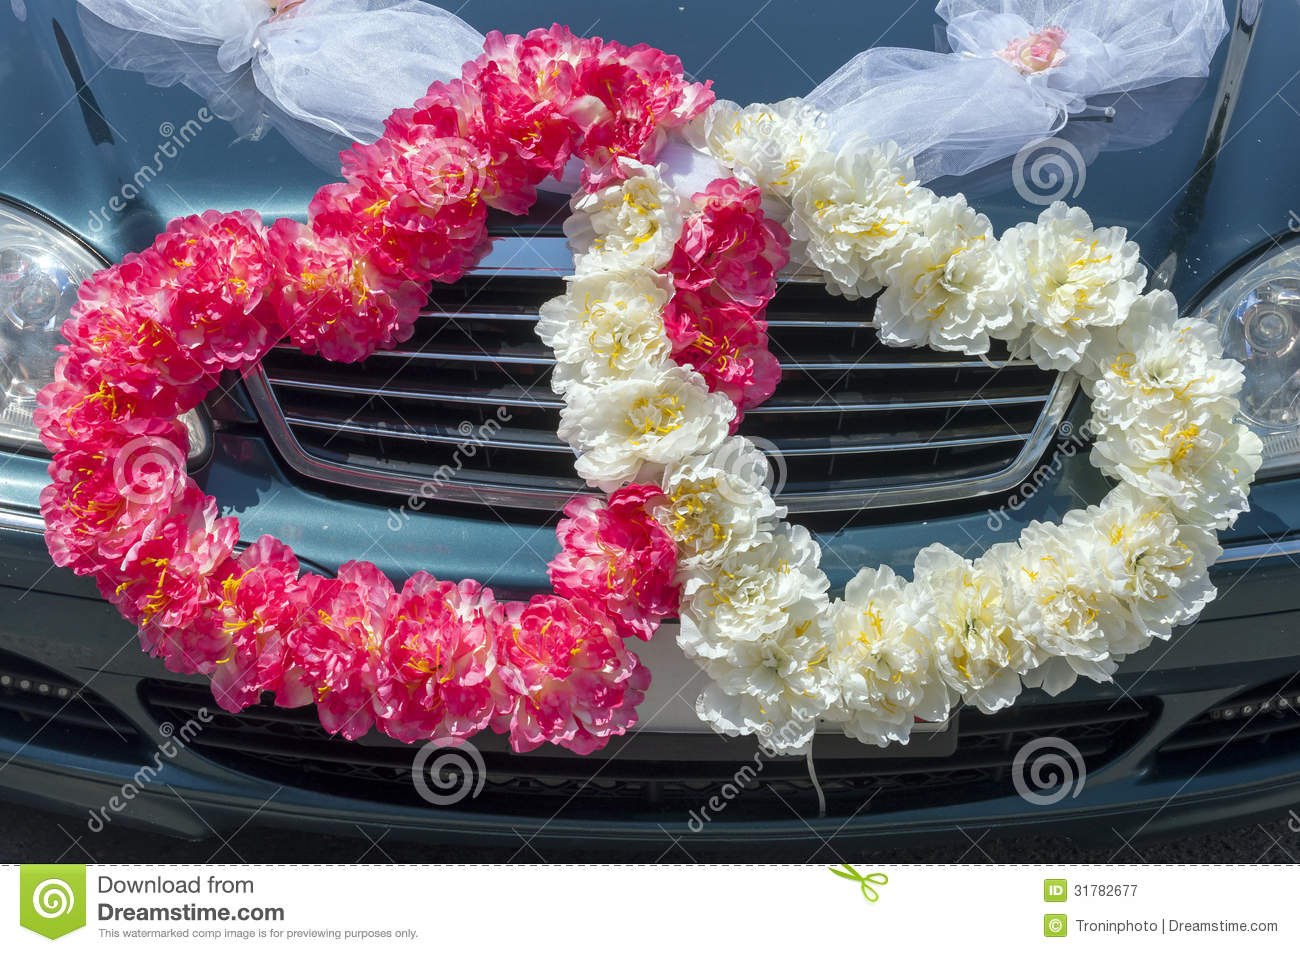 Wedding Car Decorate Wedding Car Decoration In The Form Of Hearts Royalty Free Stock